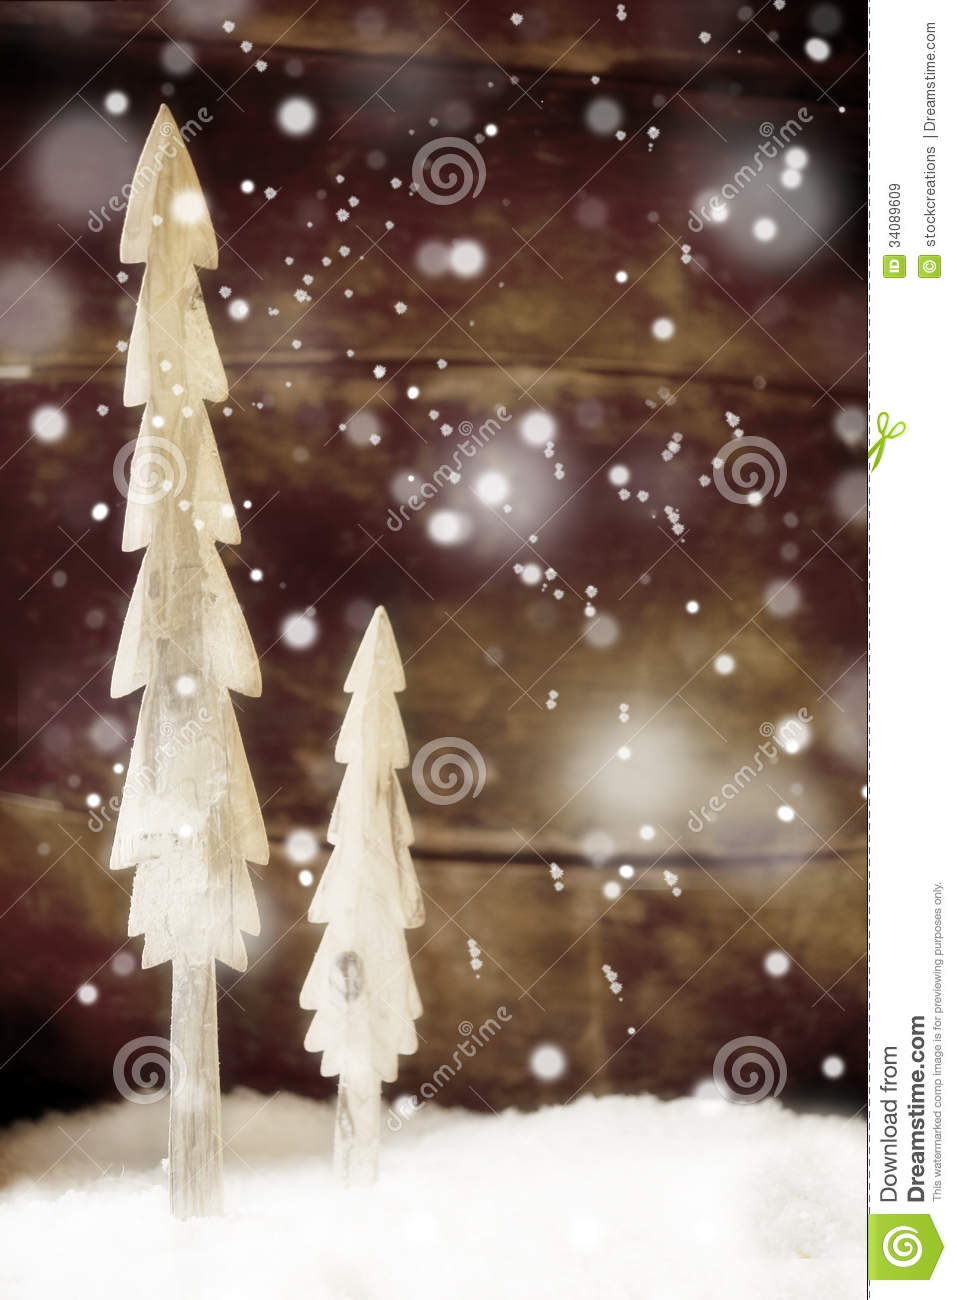 Wood christmas tree cutout - Background Christmas Festive Rustic Simple Snow Snowflakes Trees Wall Winter Wooden